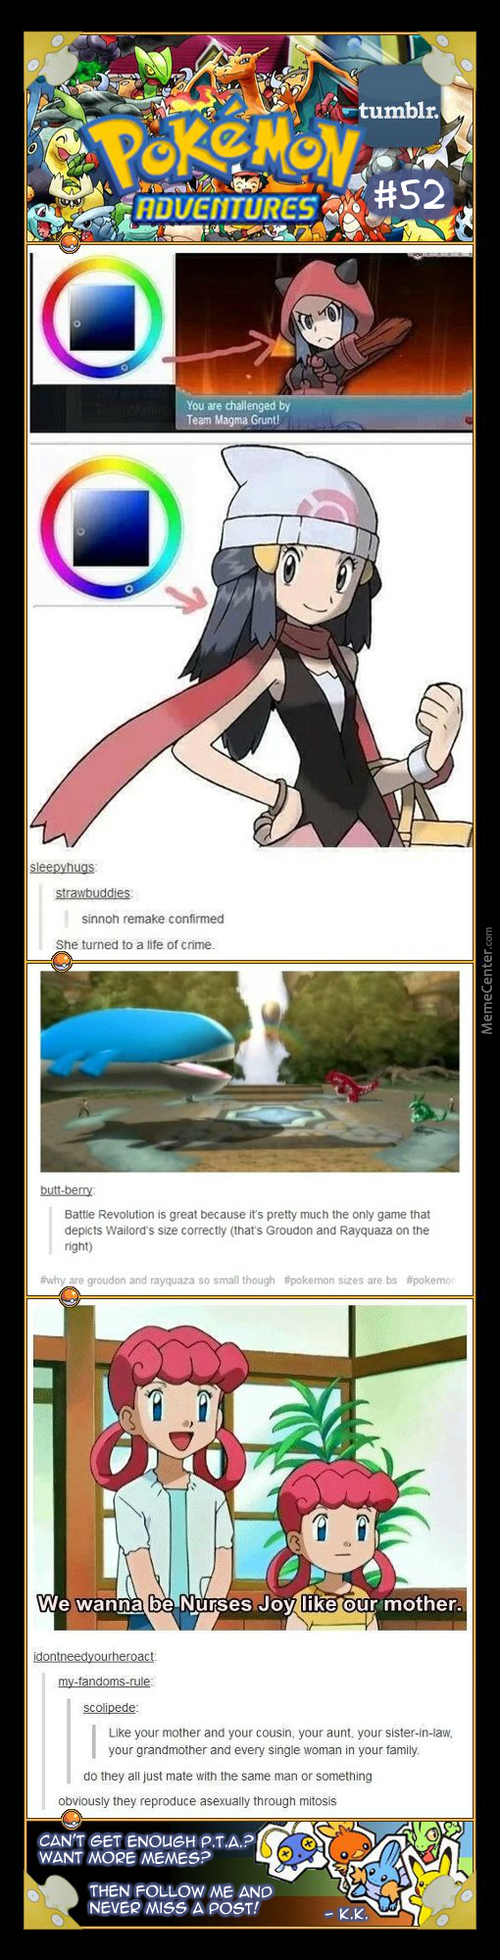 Pokemon Tumblr Adventures #52